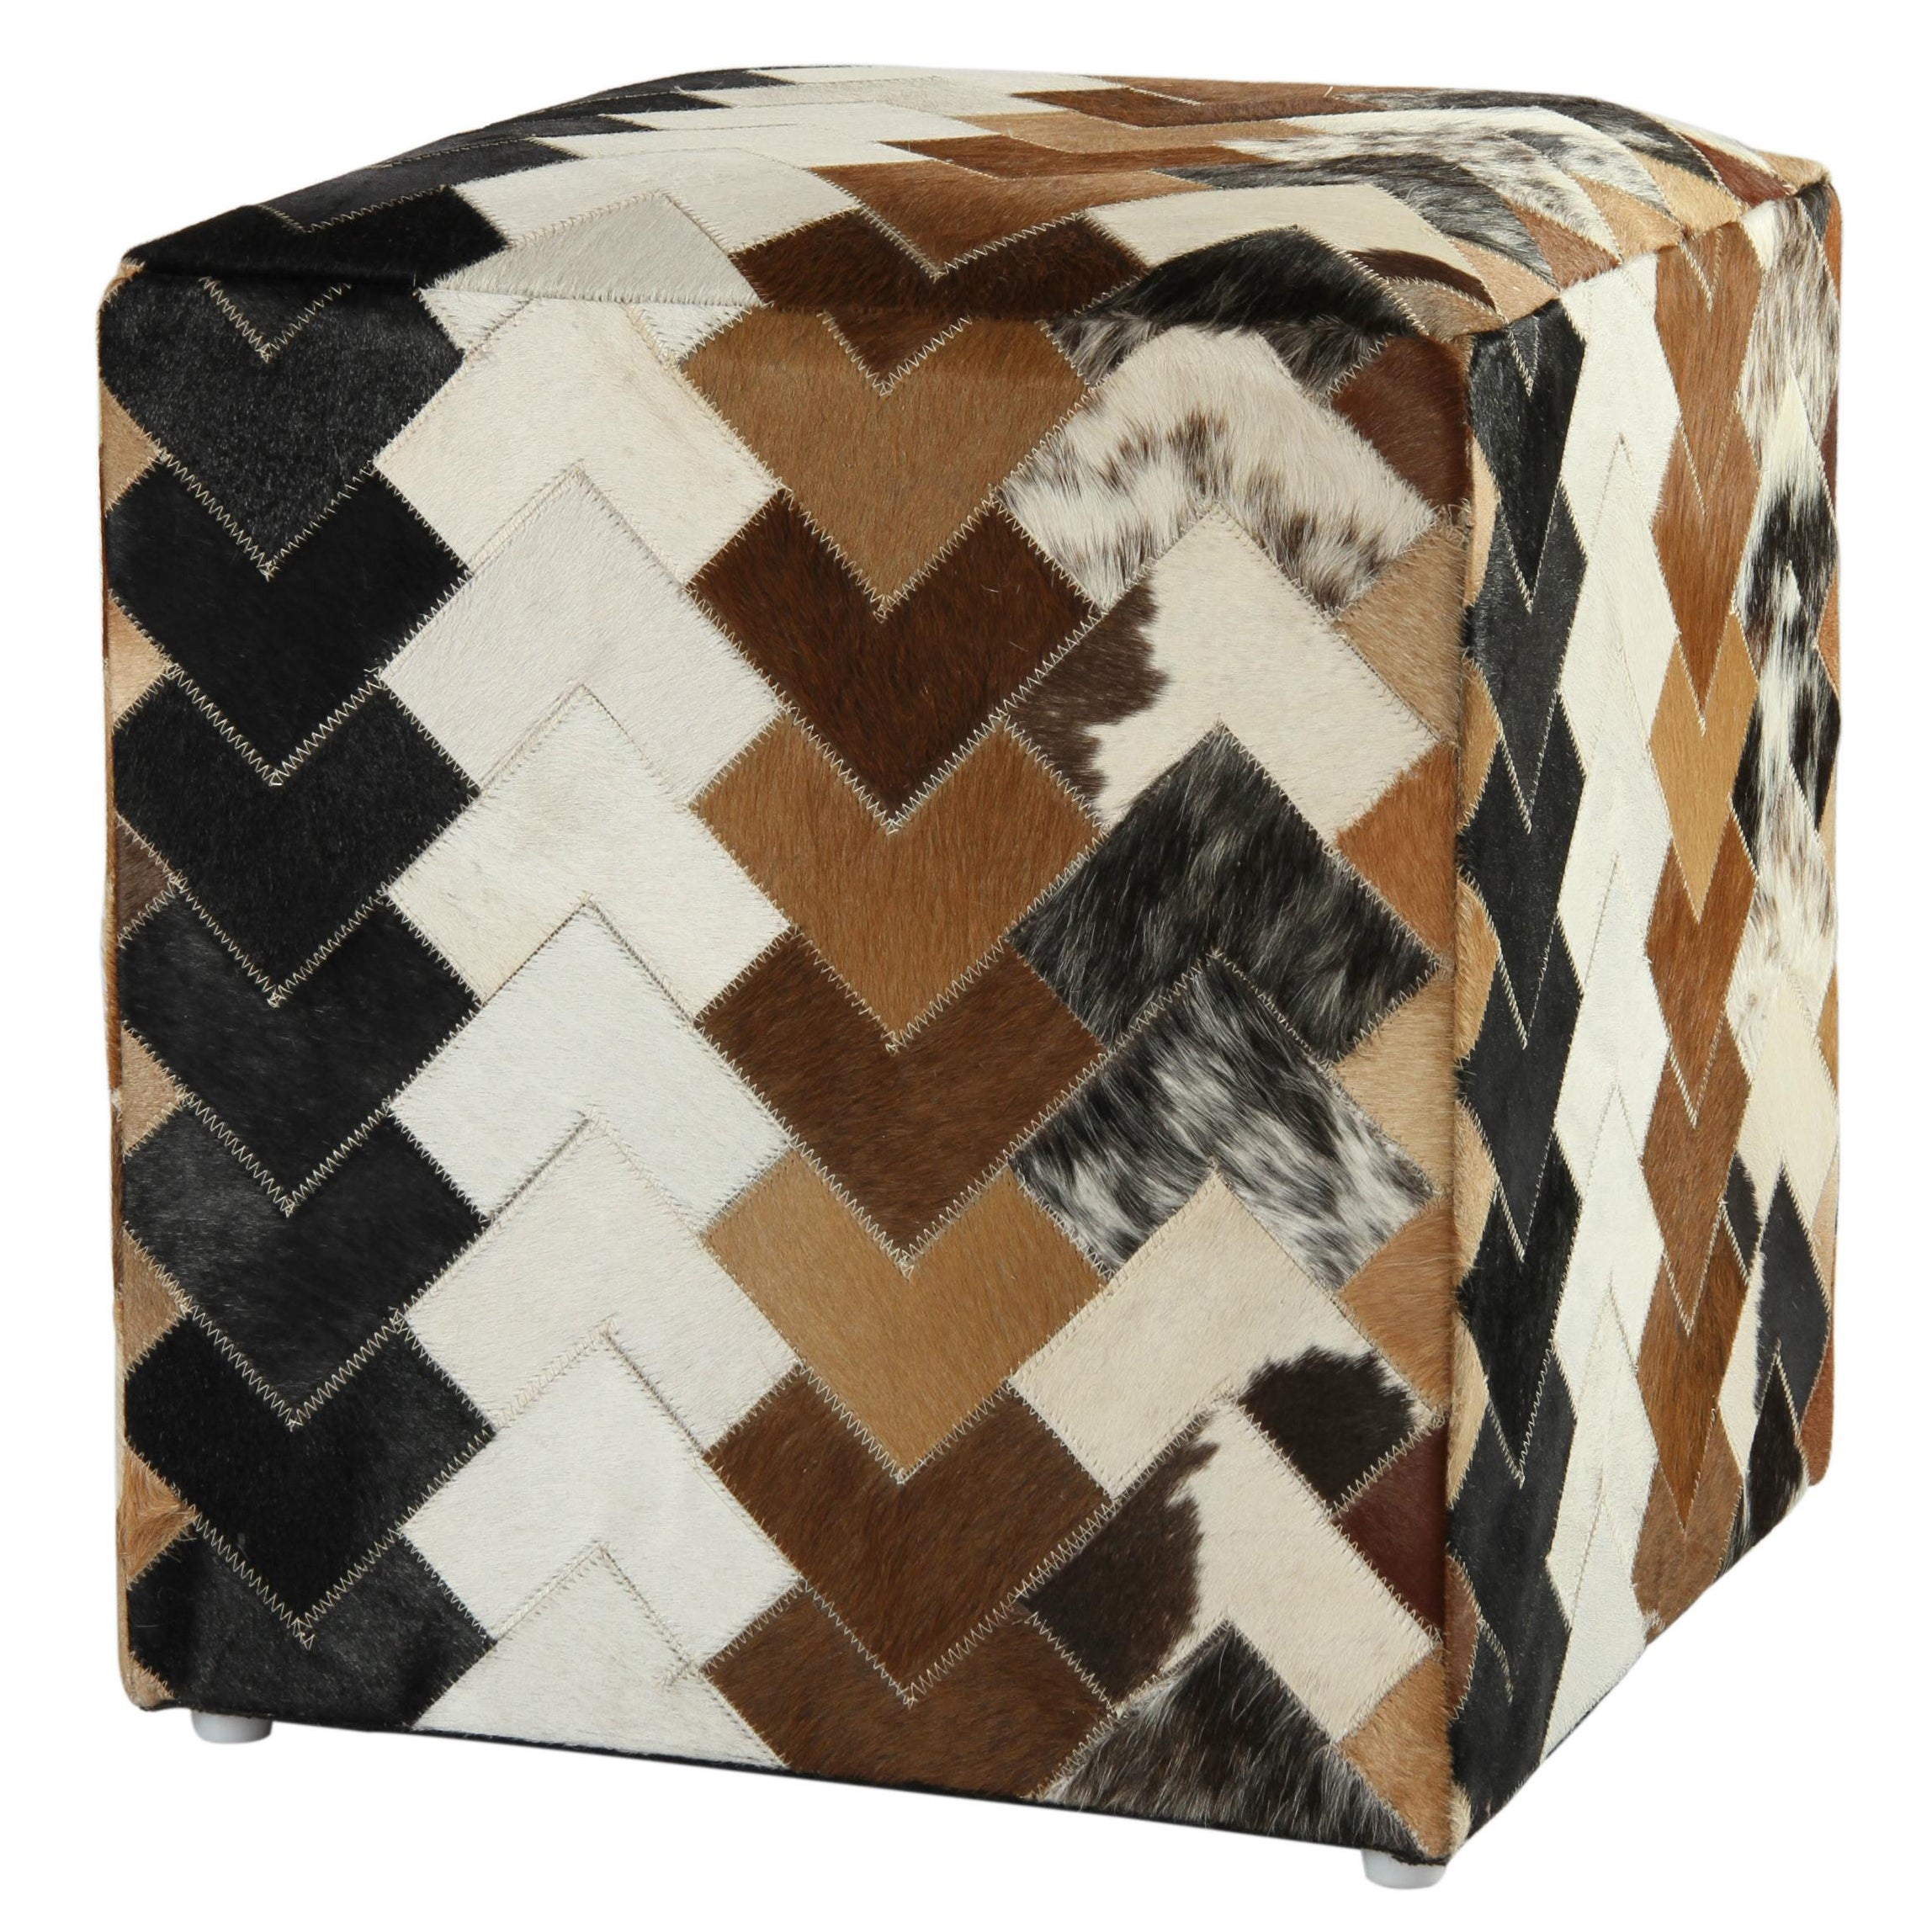 "St. Croix Brown Leather Arrow Hide Pouf Ottoman (21"" Brow..."